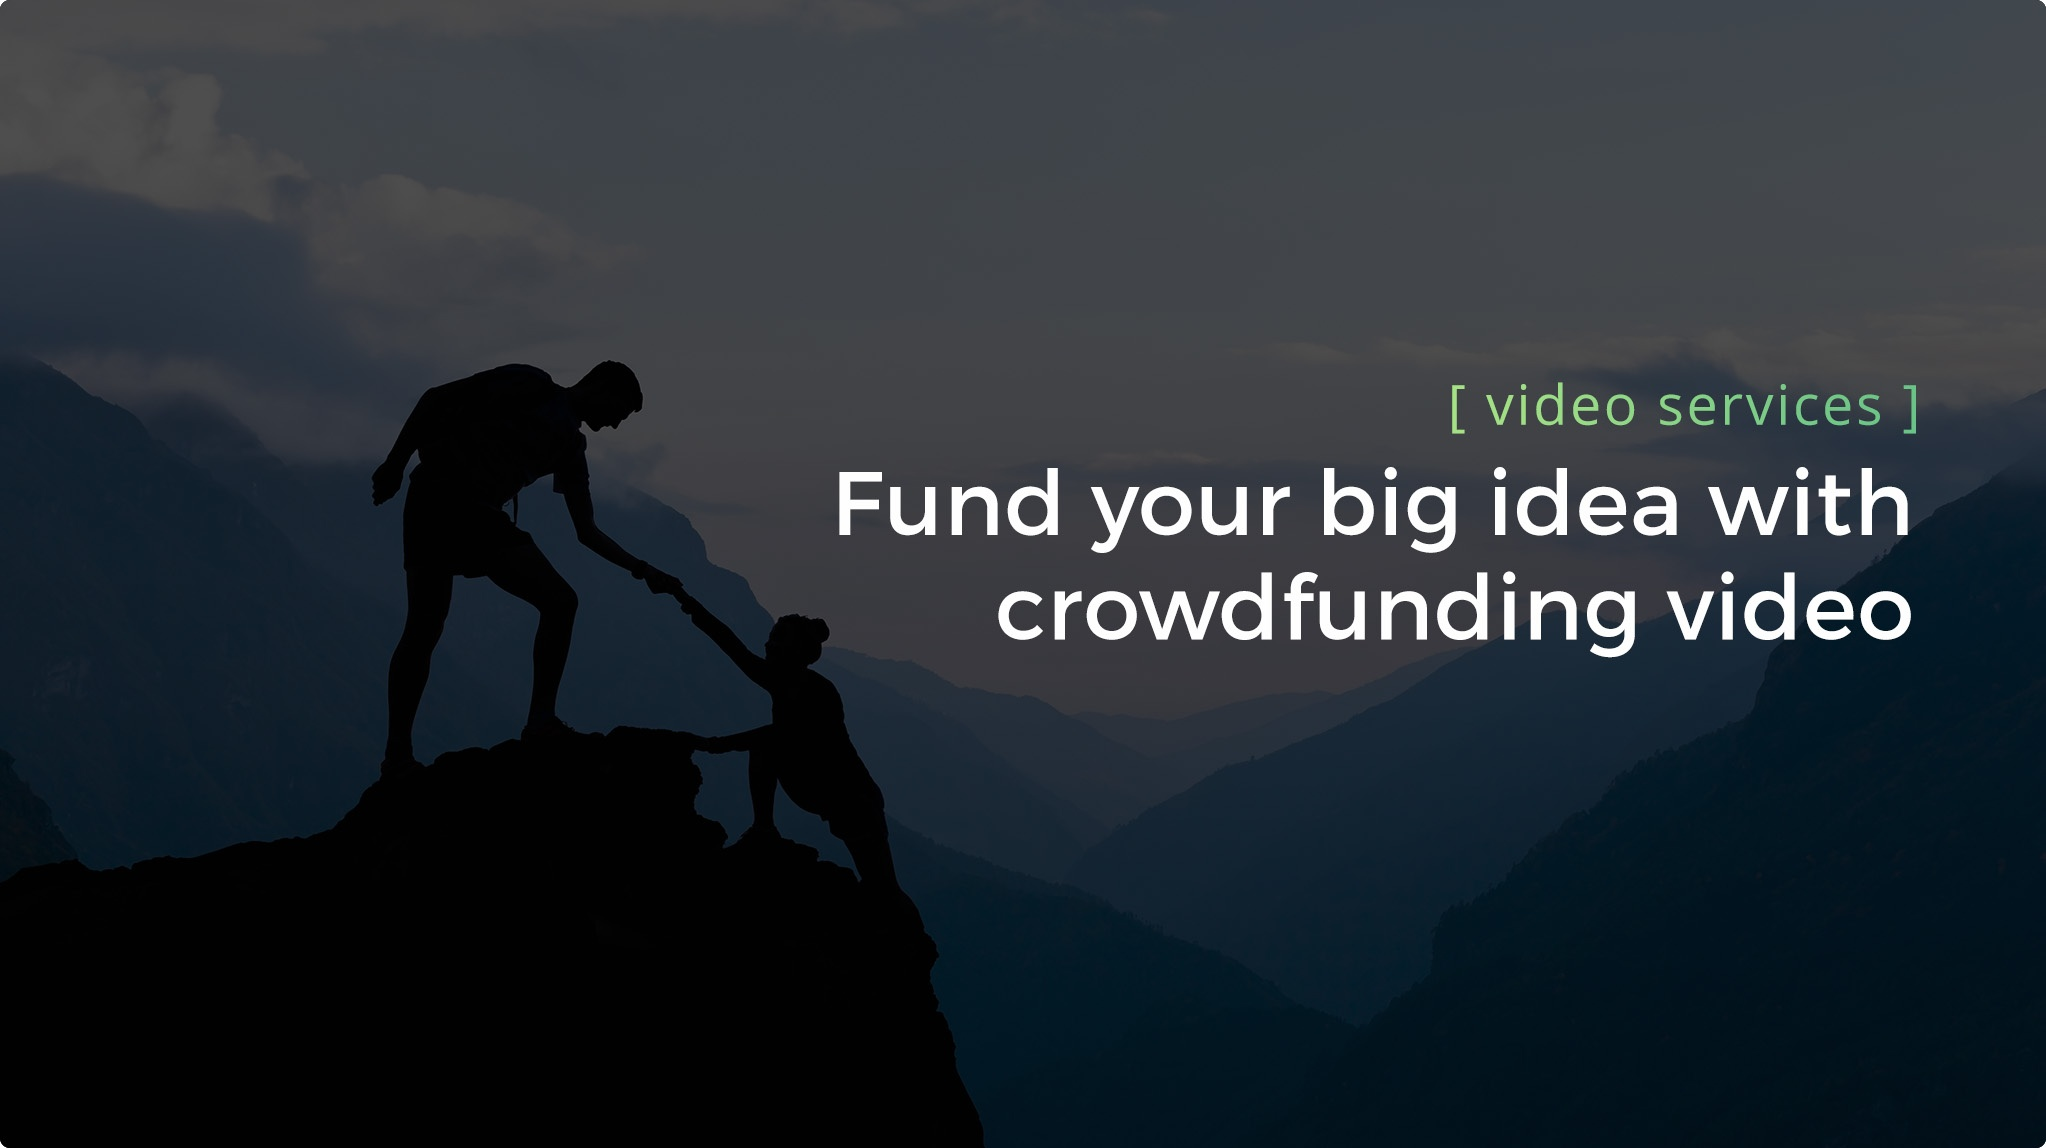 Video Services - Fund Your Big Idea With Crowdfunding Video Header